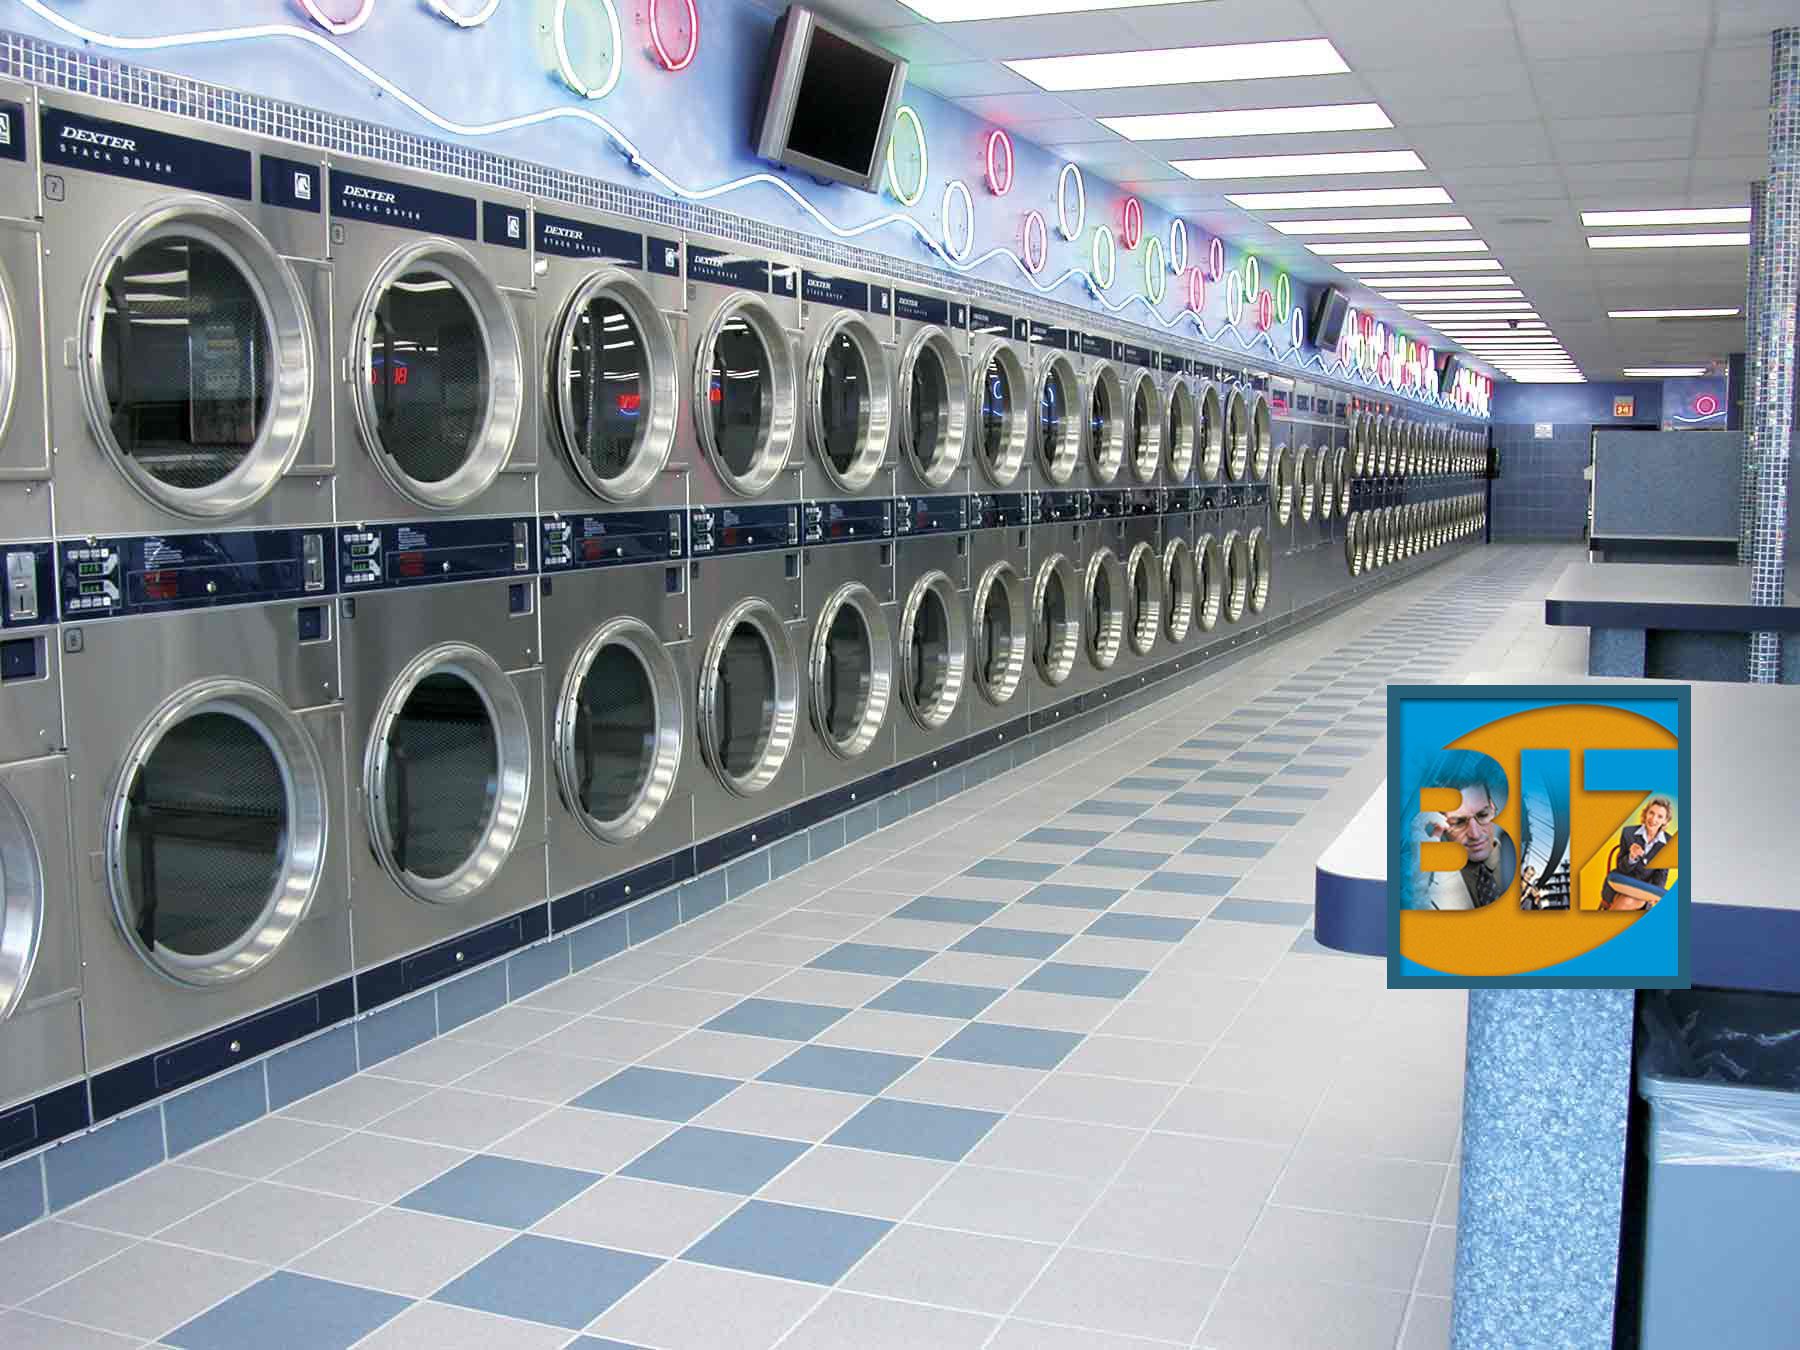 Coin laundry business plan malaysia news